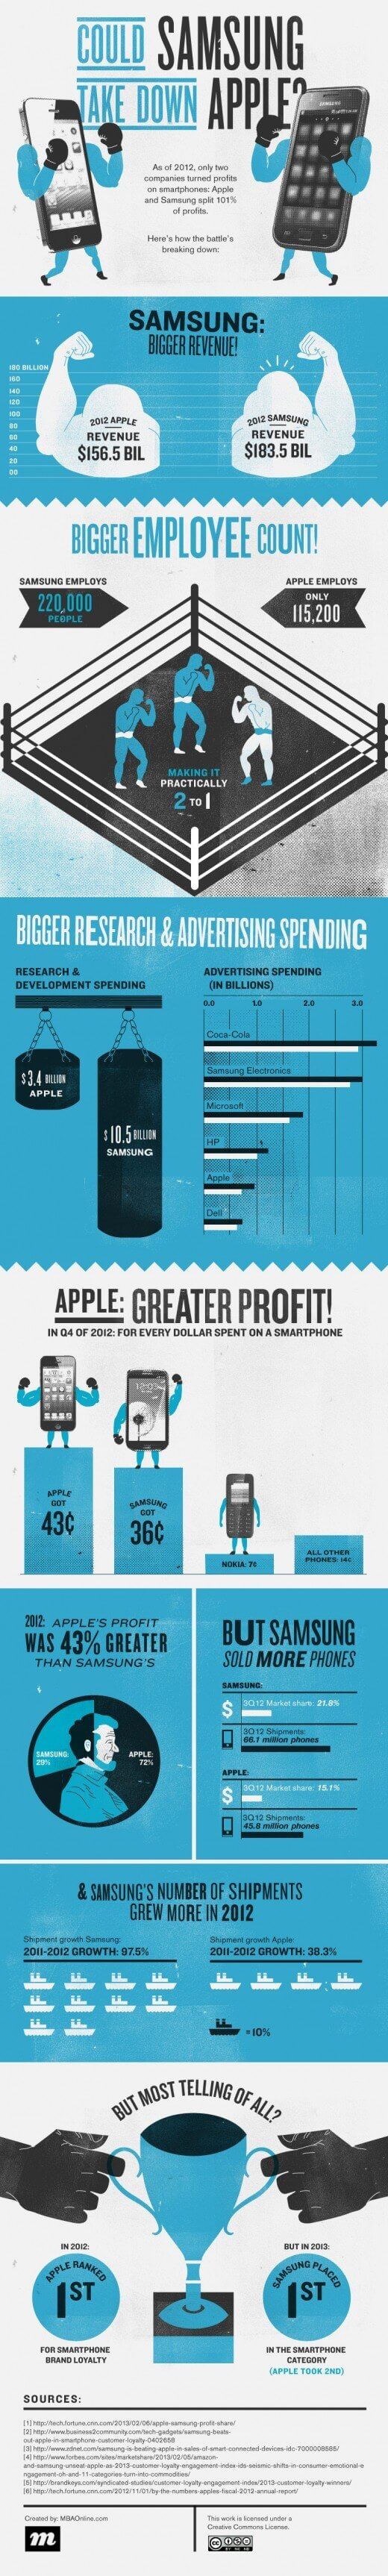 A Look at the Smartphone Competition Between Samsung and Apple